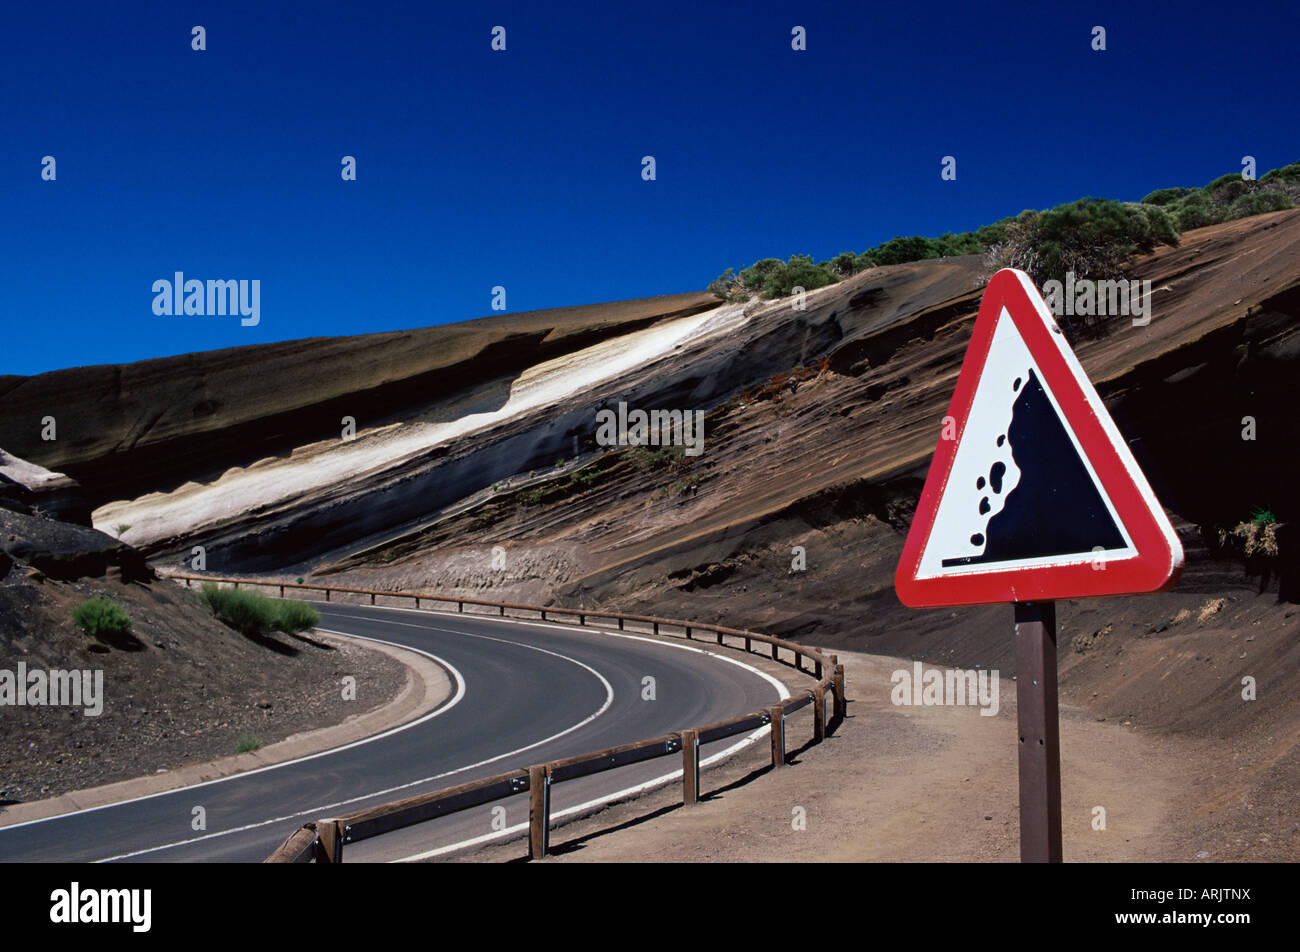 Sign on road with stratified volcanic rocks in the background, Parque Nacional del Teide, Tenerife, Canary Islands, - Stock Image